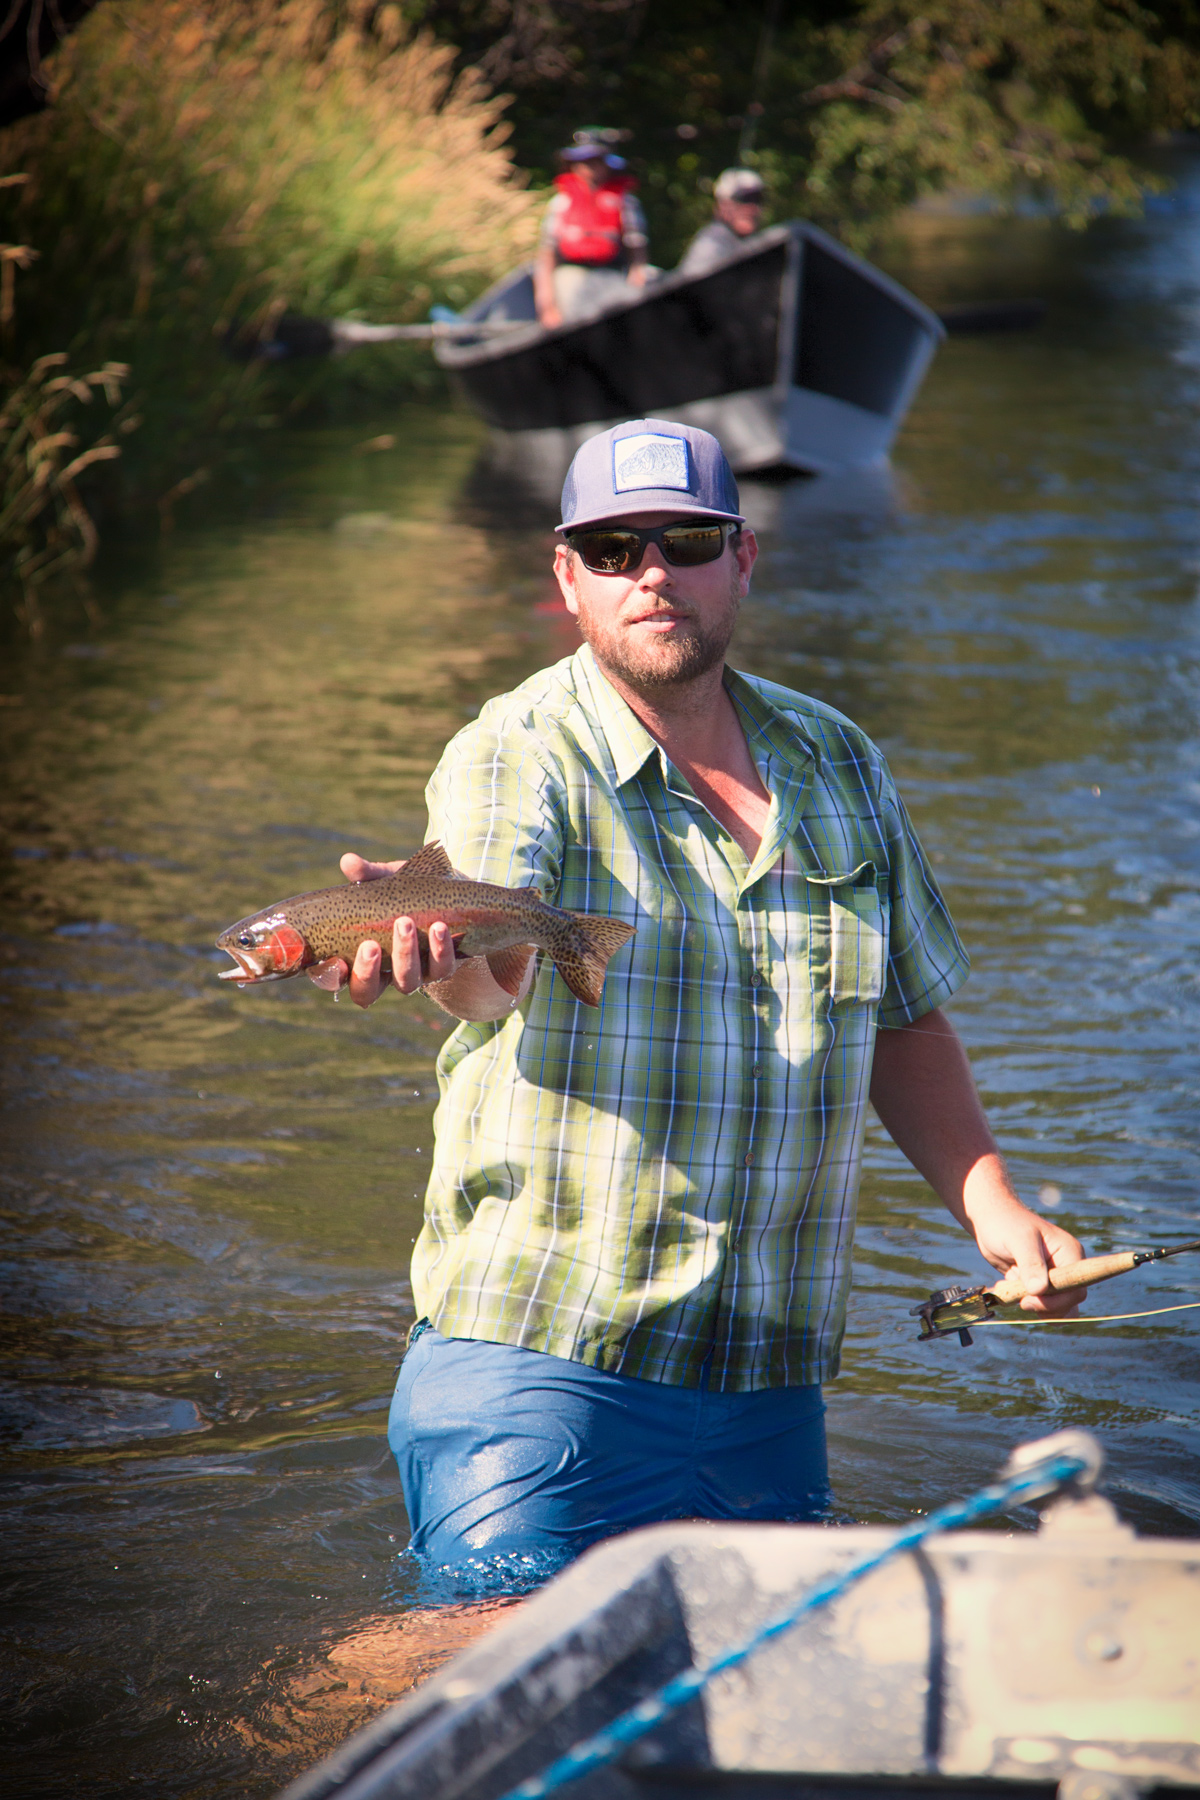 Fishing on the Deschutes River with Matt Carter of  Deschutes River Outfitters via J5MM.com